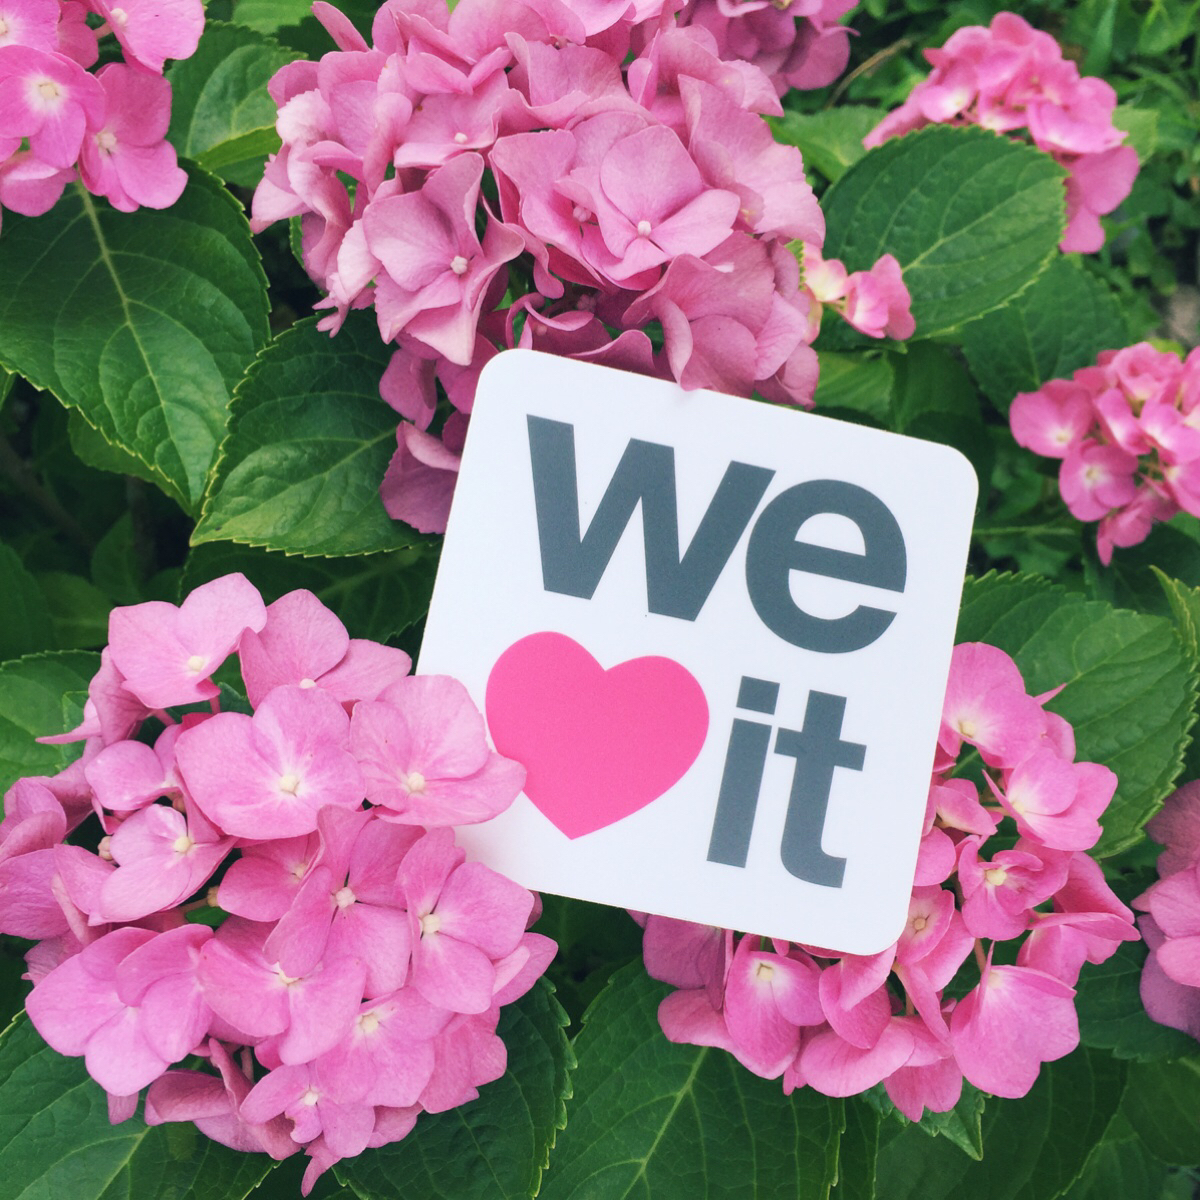 we heart it and flowers image